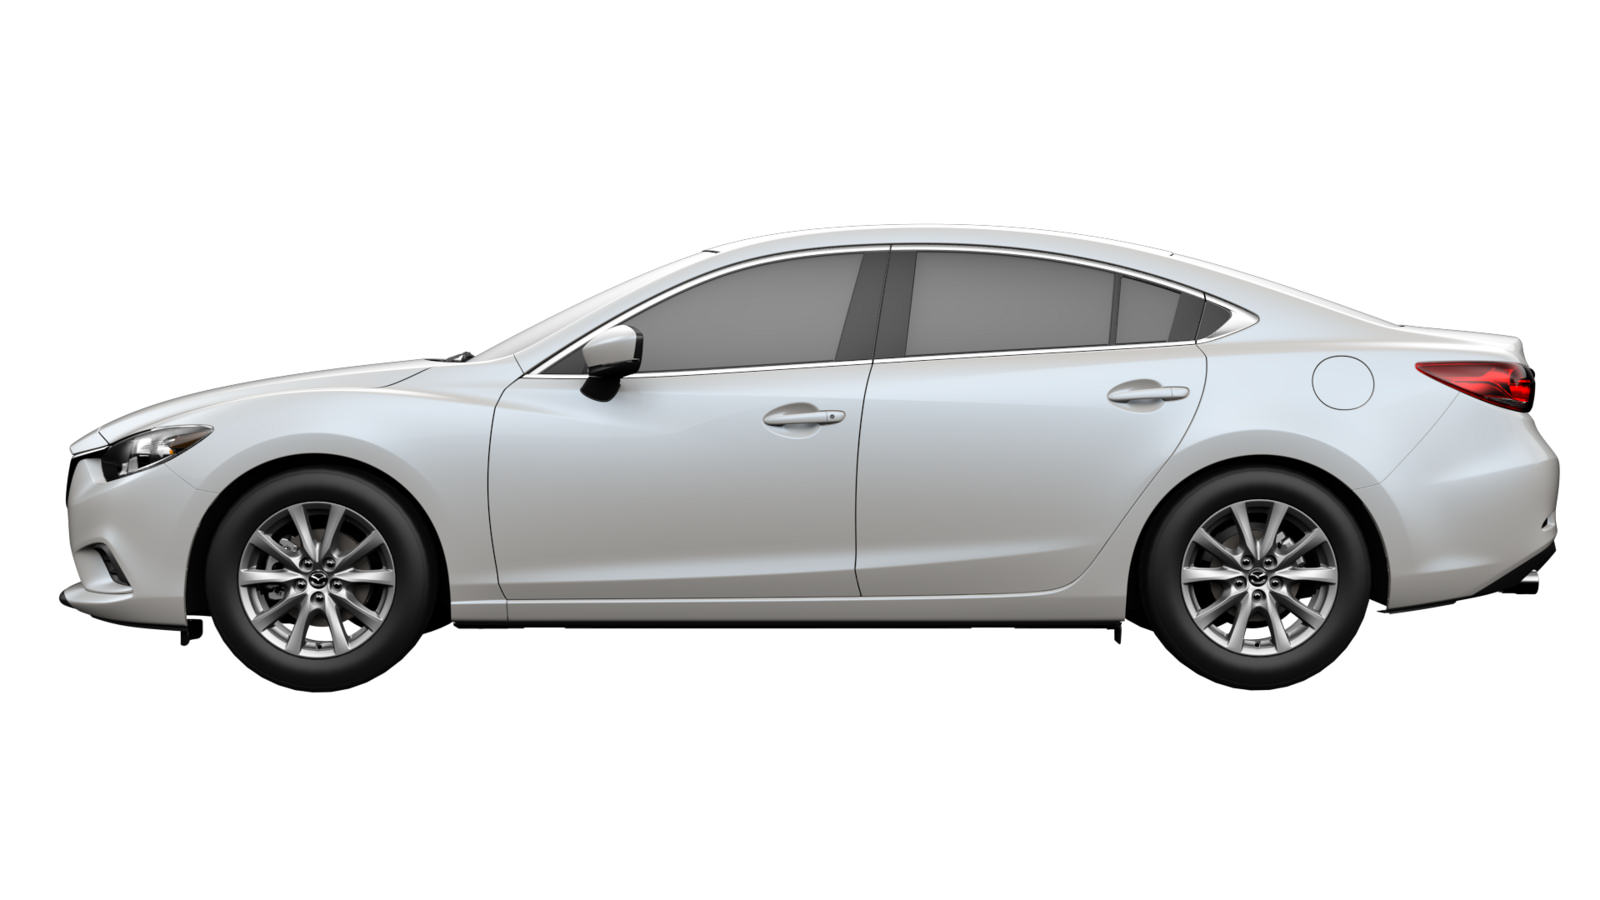 2017 Mazda6 design - See it at Wantagh Mazda on Long Island